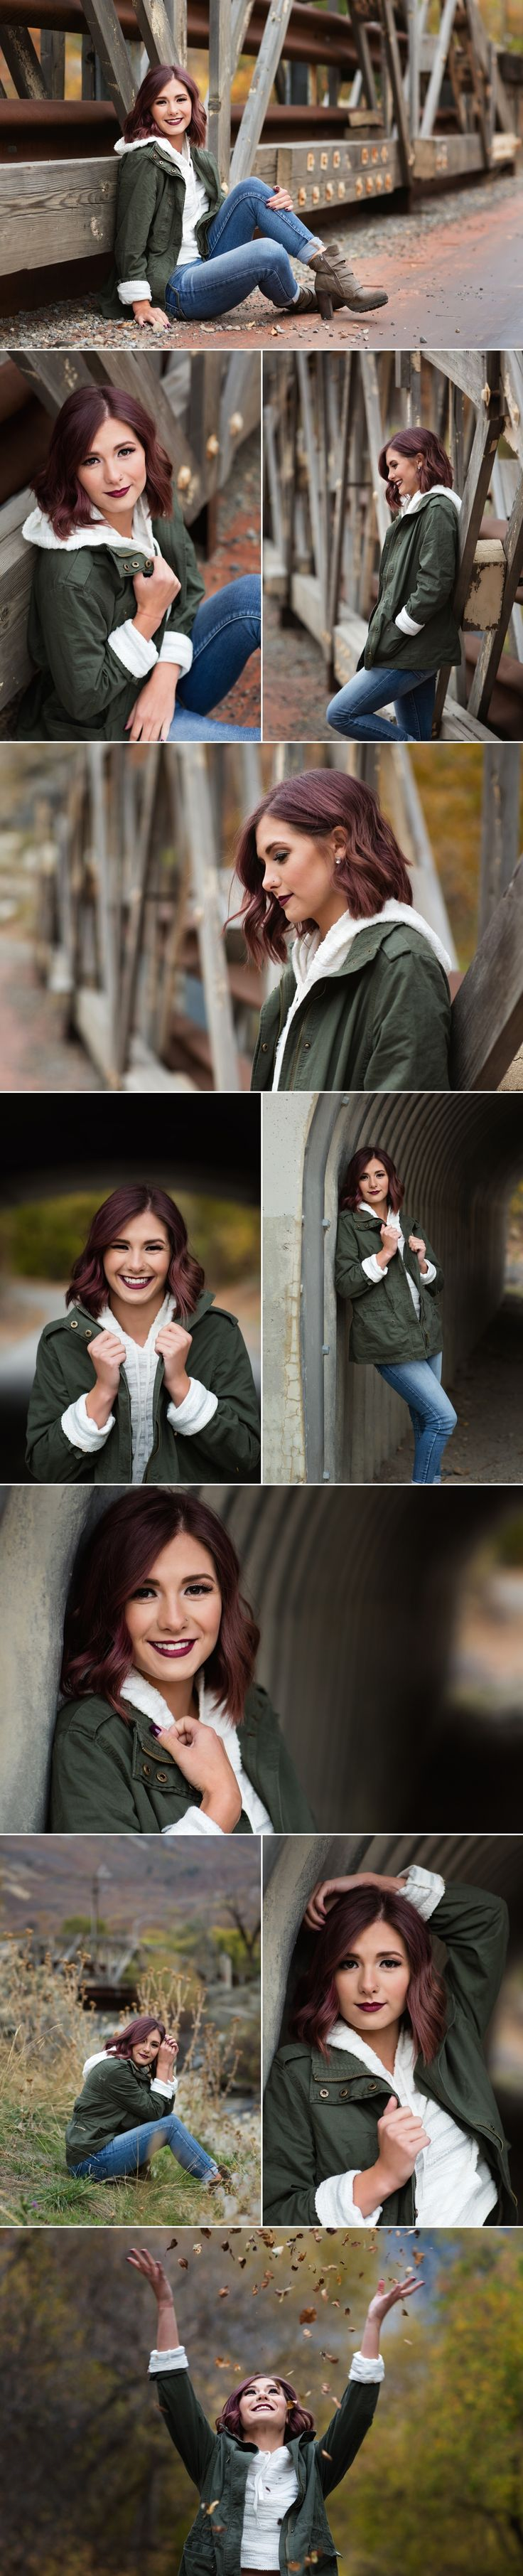 Utah's Top High School Senior Portrait Experience.